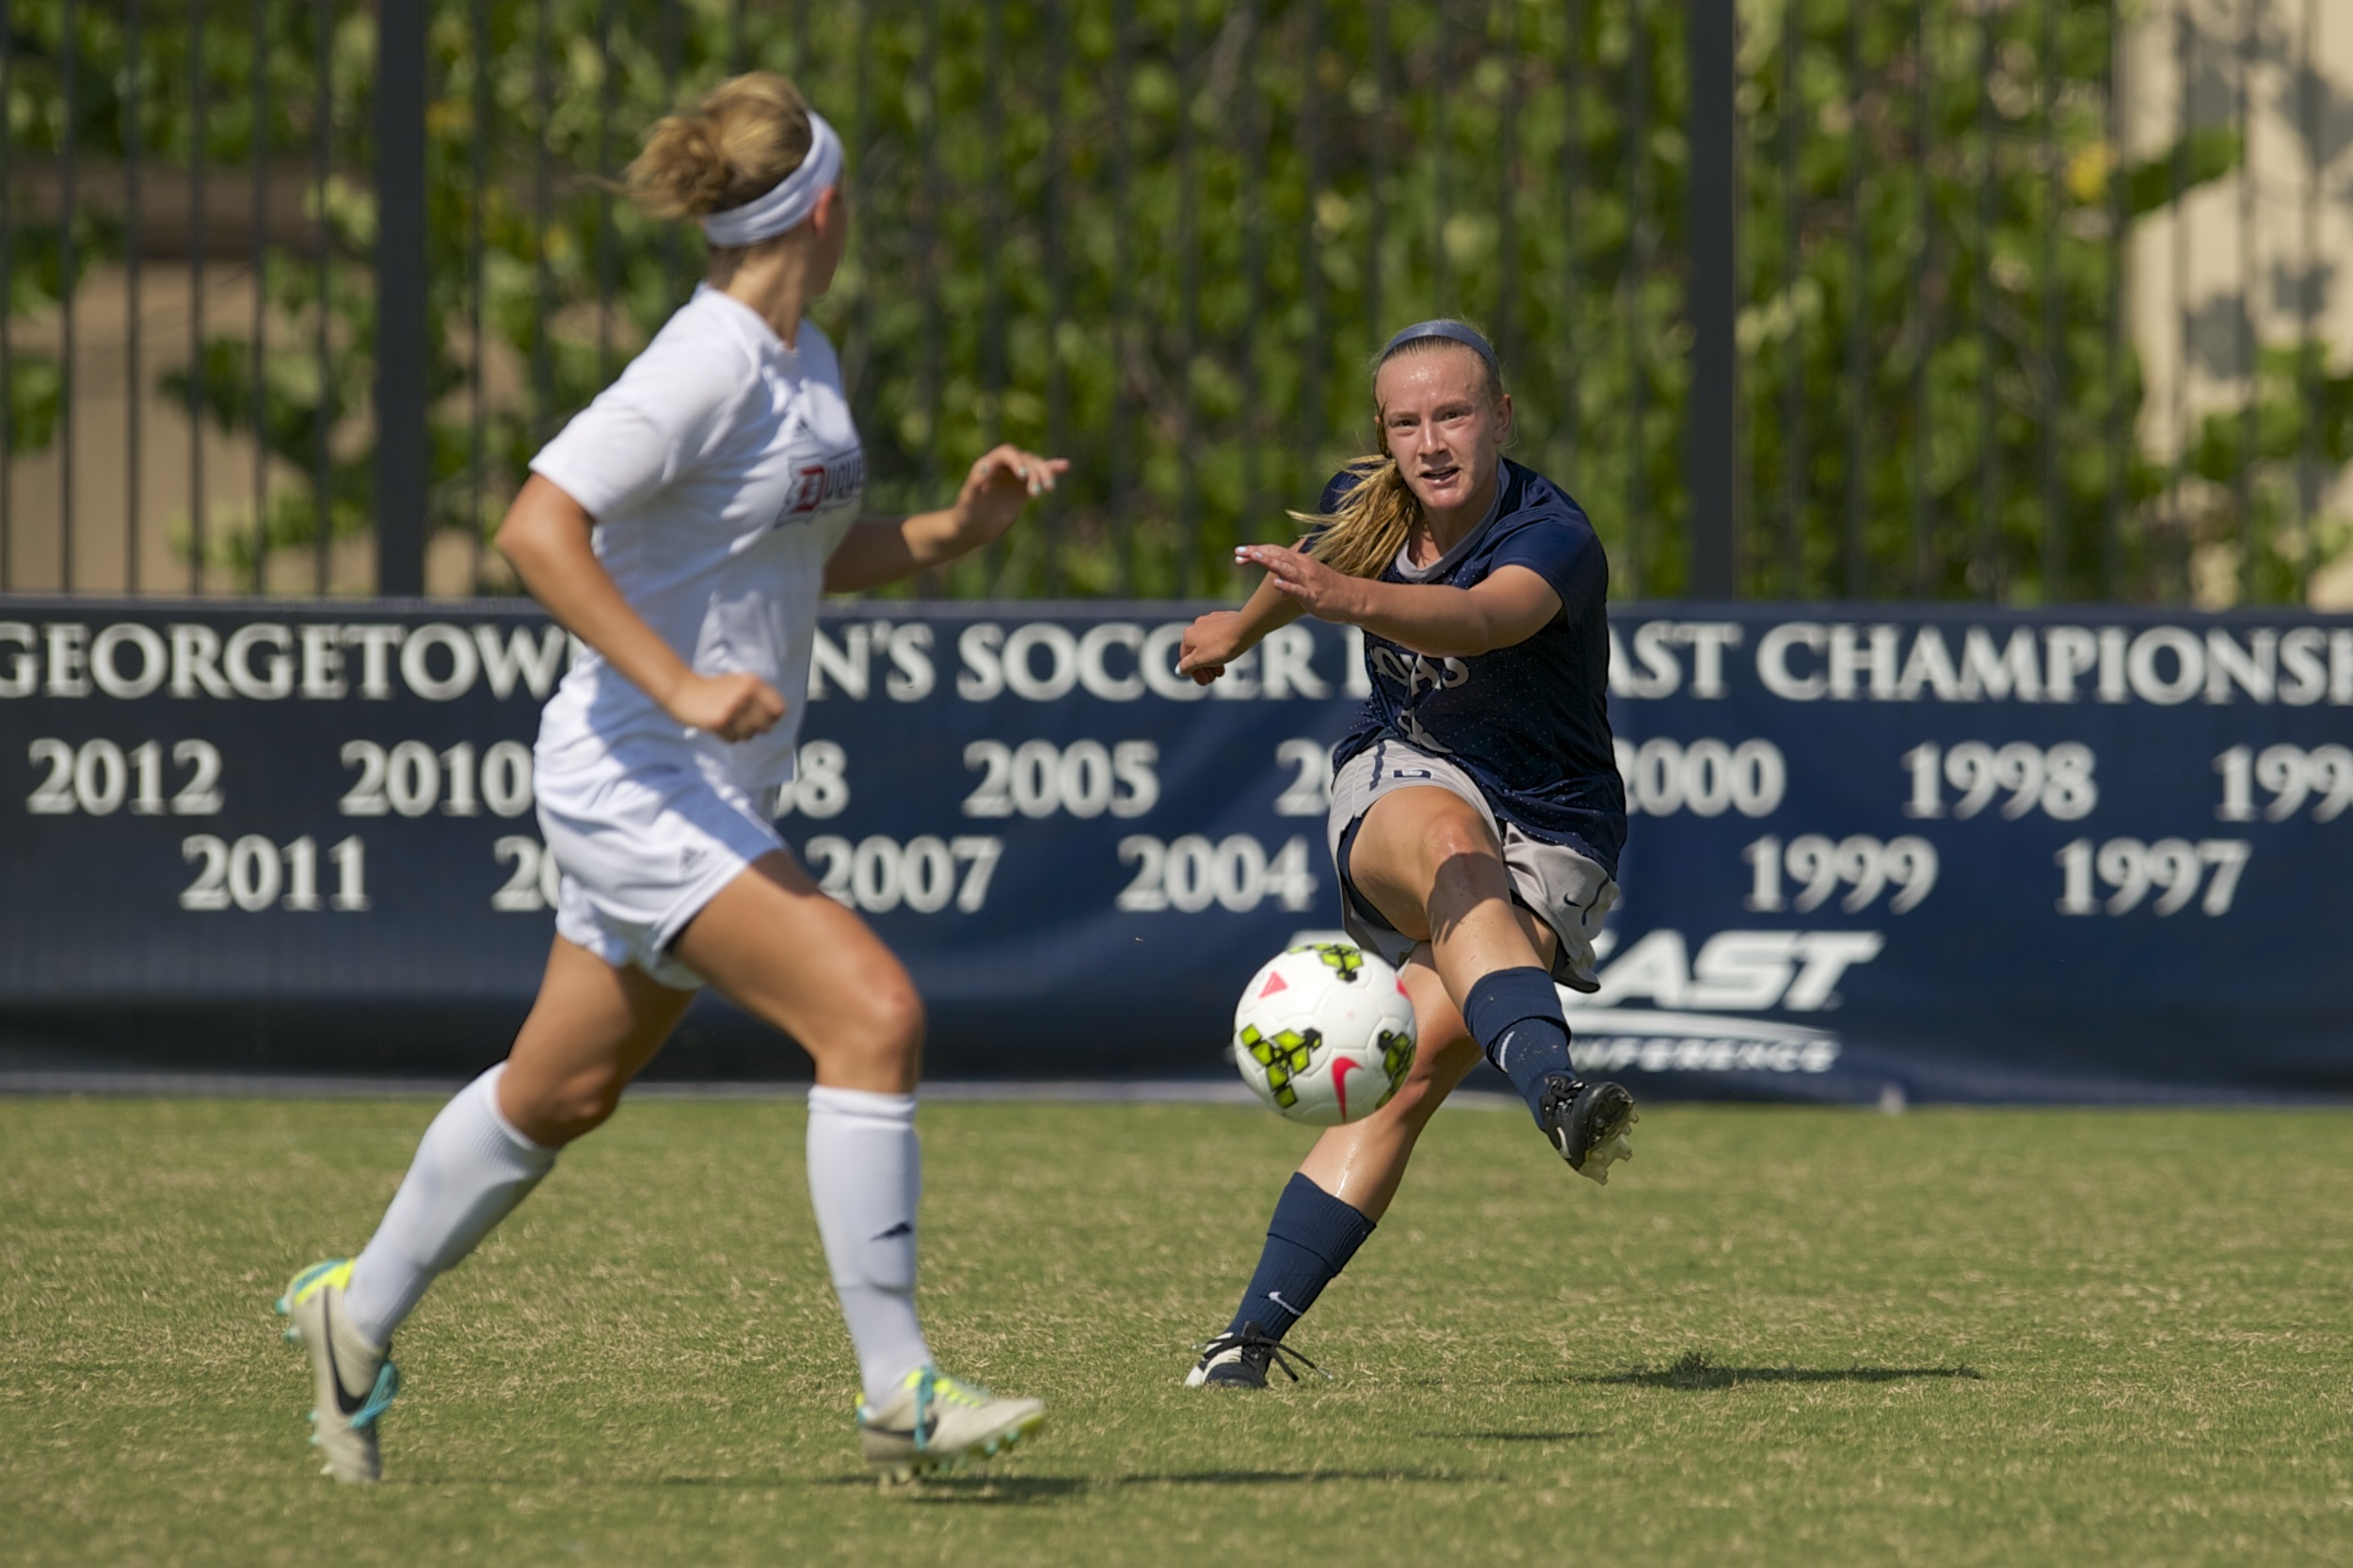 Senior Audra Ayotte scored in the 54th minute to help Georgetown beat Creighton, 1-0.